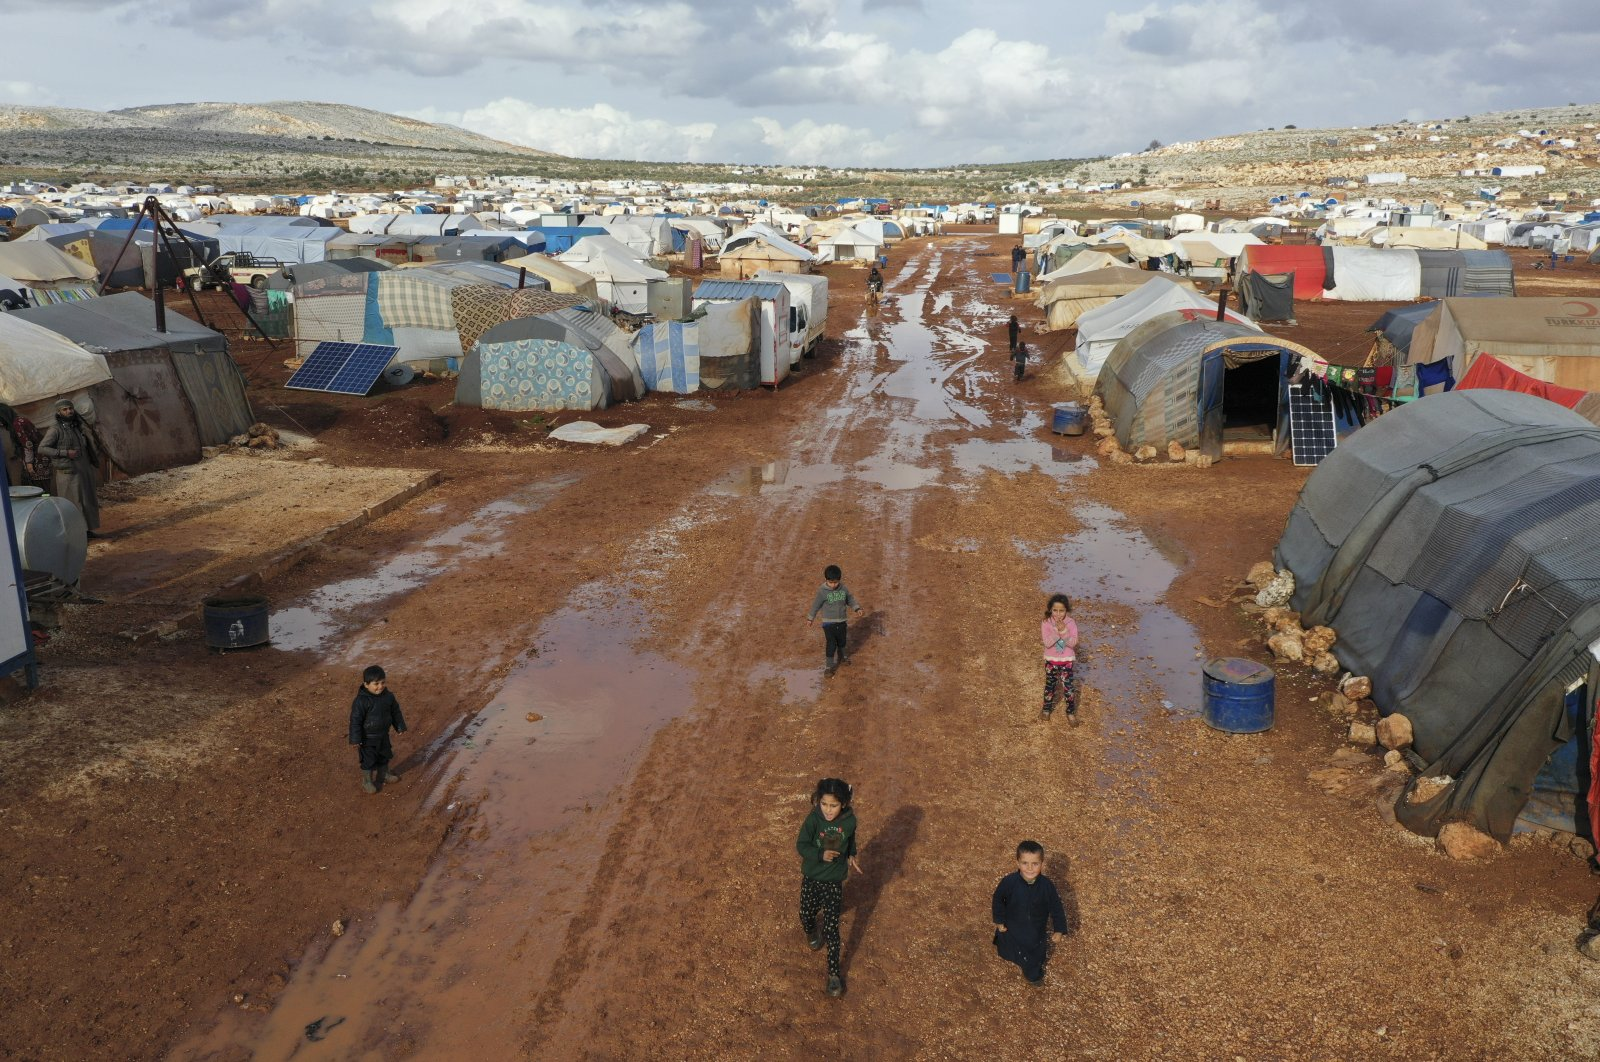 Syrian refugees walk through a camp for displaced muddied by recent rains near the village of Kafr Aruq, in Idlib province, Syria, Jan. 28, 2021. (AP)